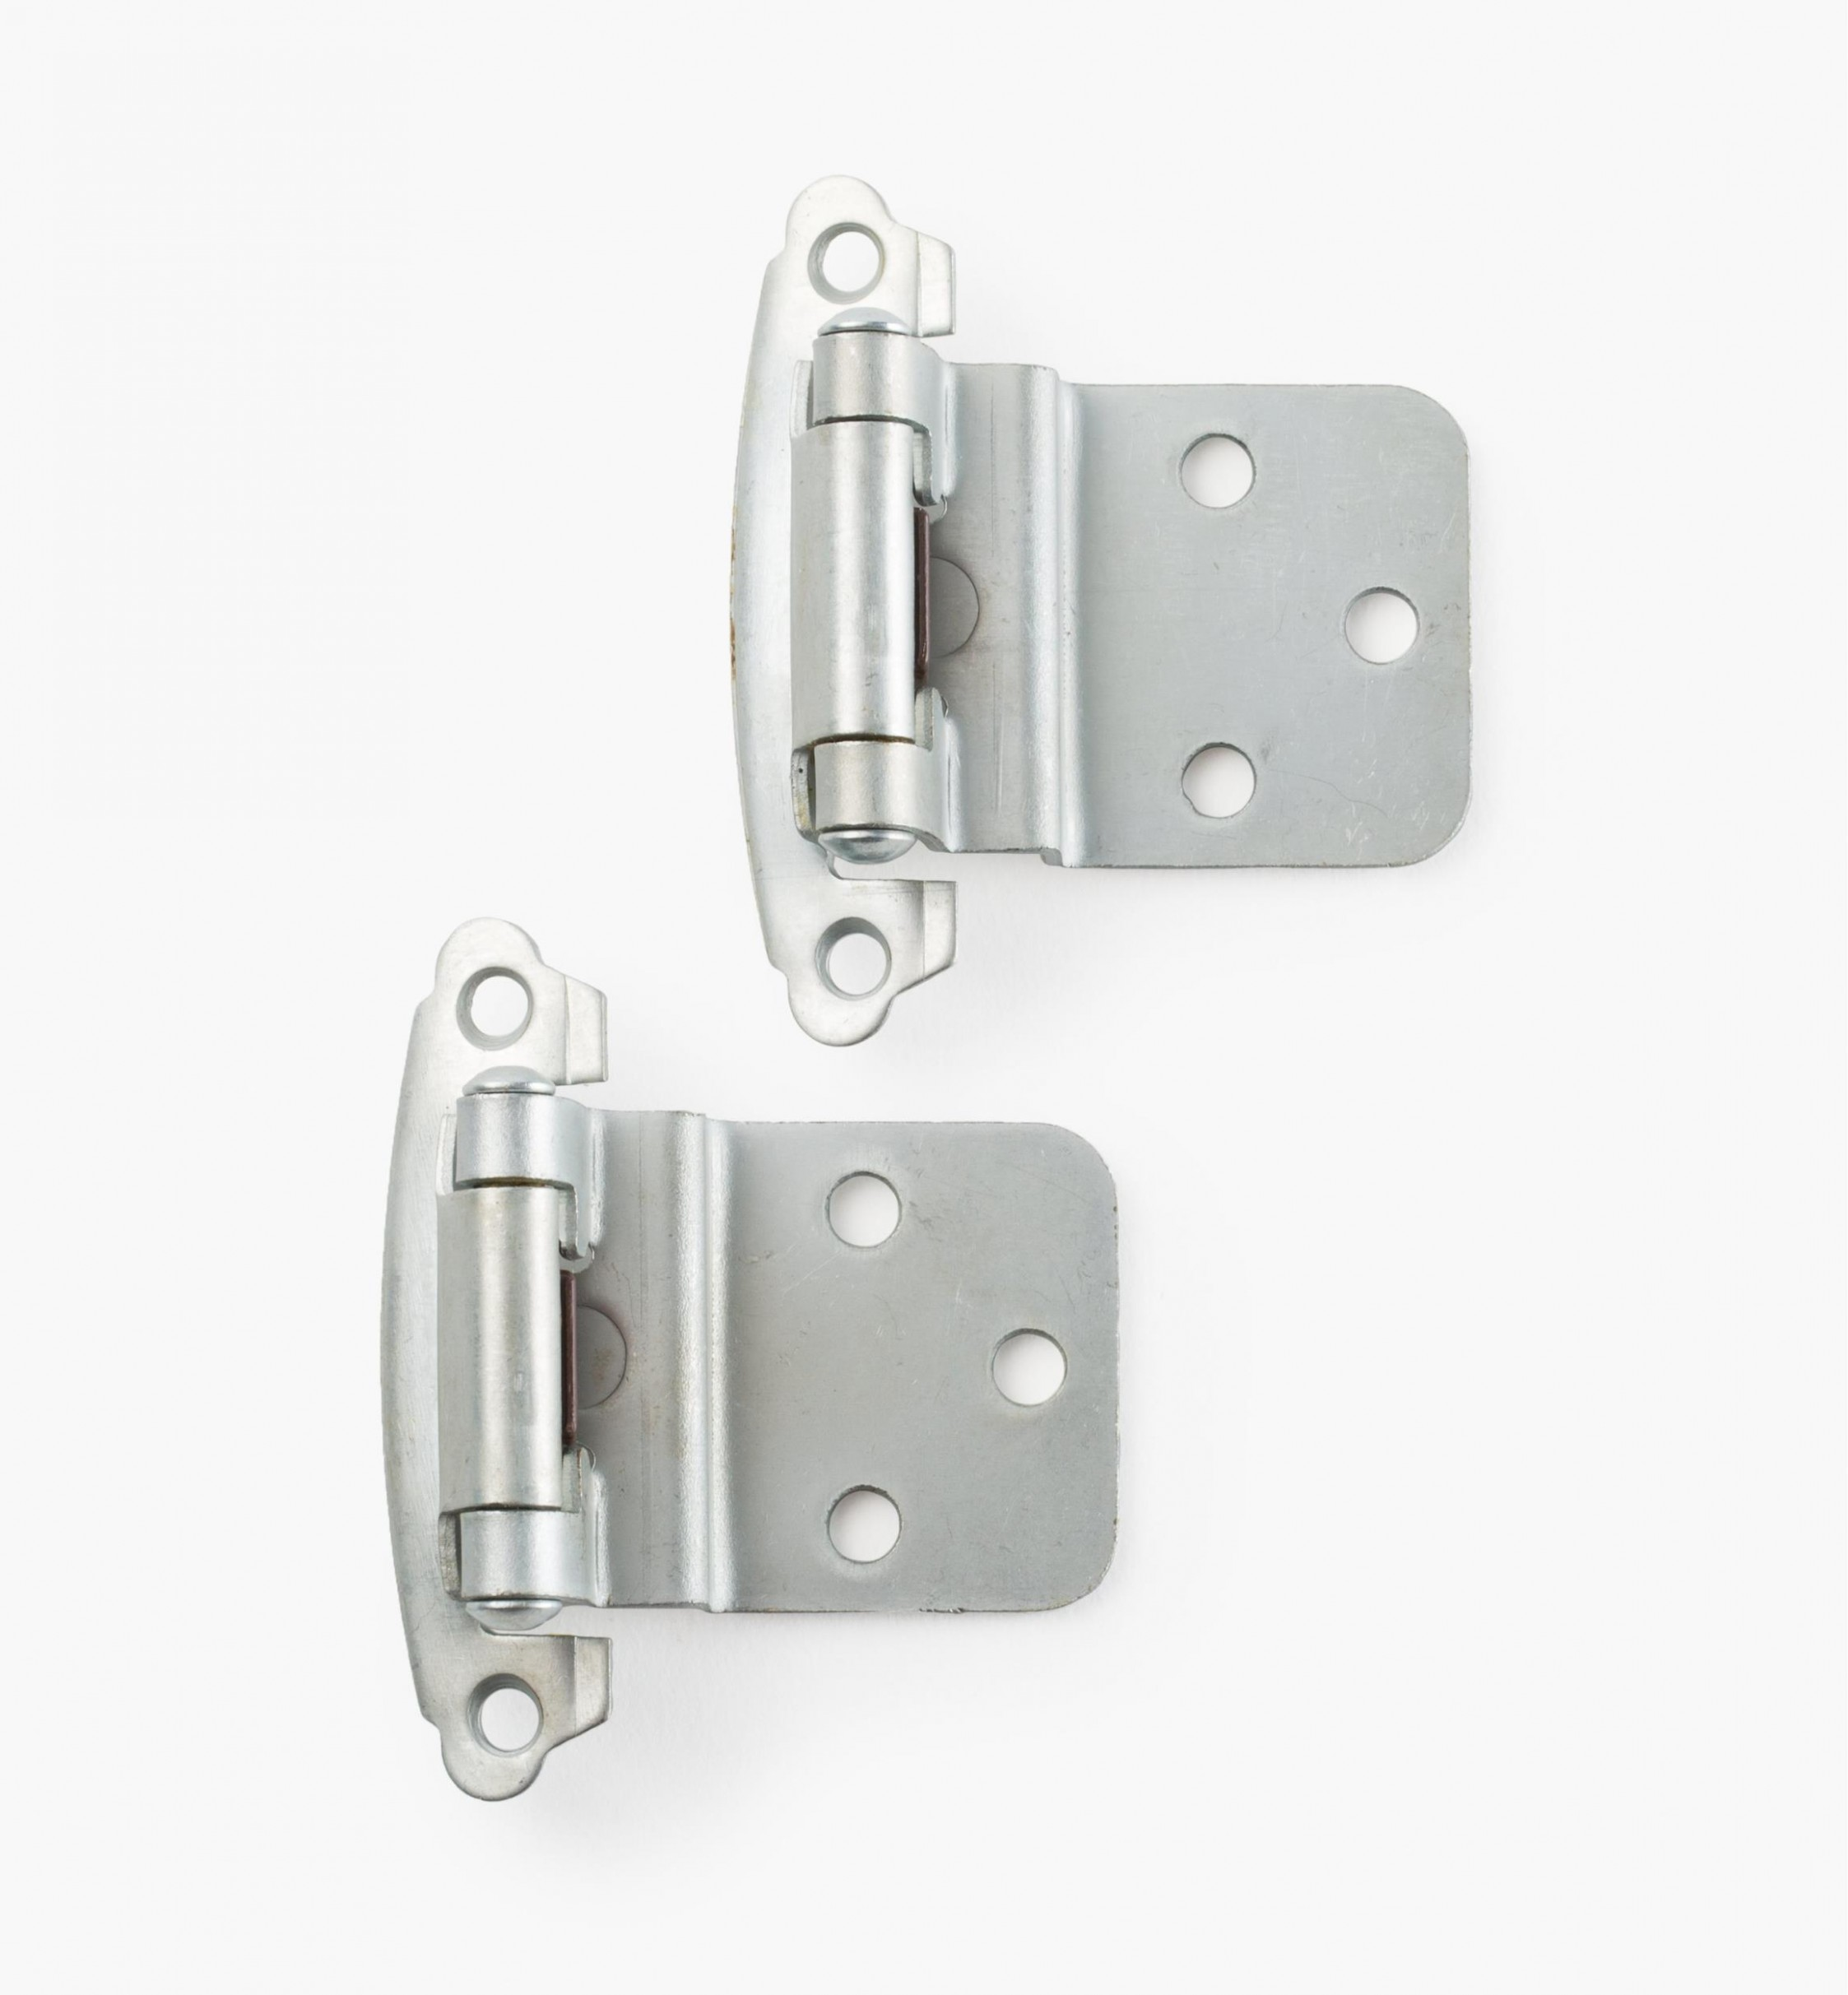 Belwith Surface Self-Closing Offset Hinges - Lee Valley Tools - Chrome Hinges For Kitchen Cabinets